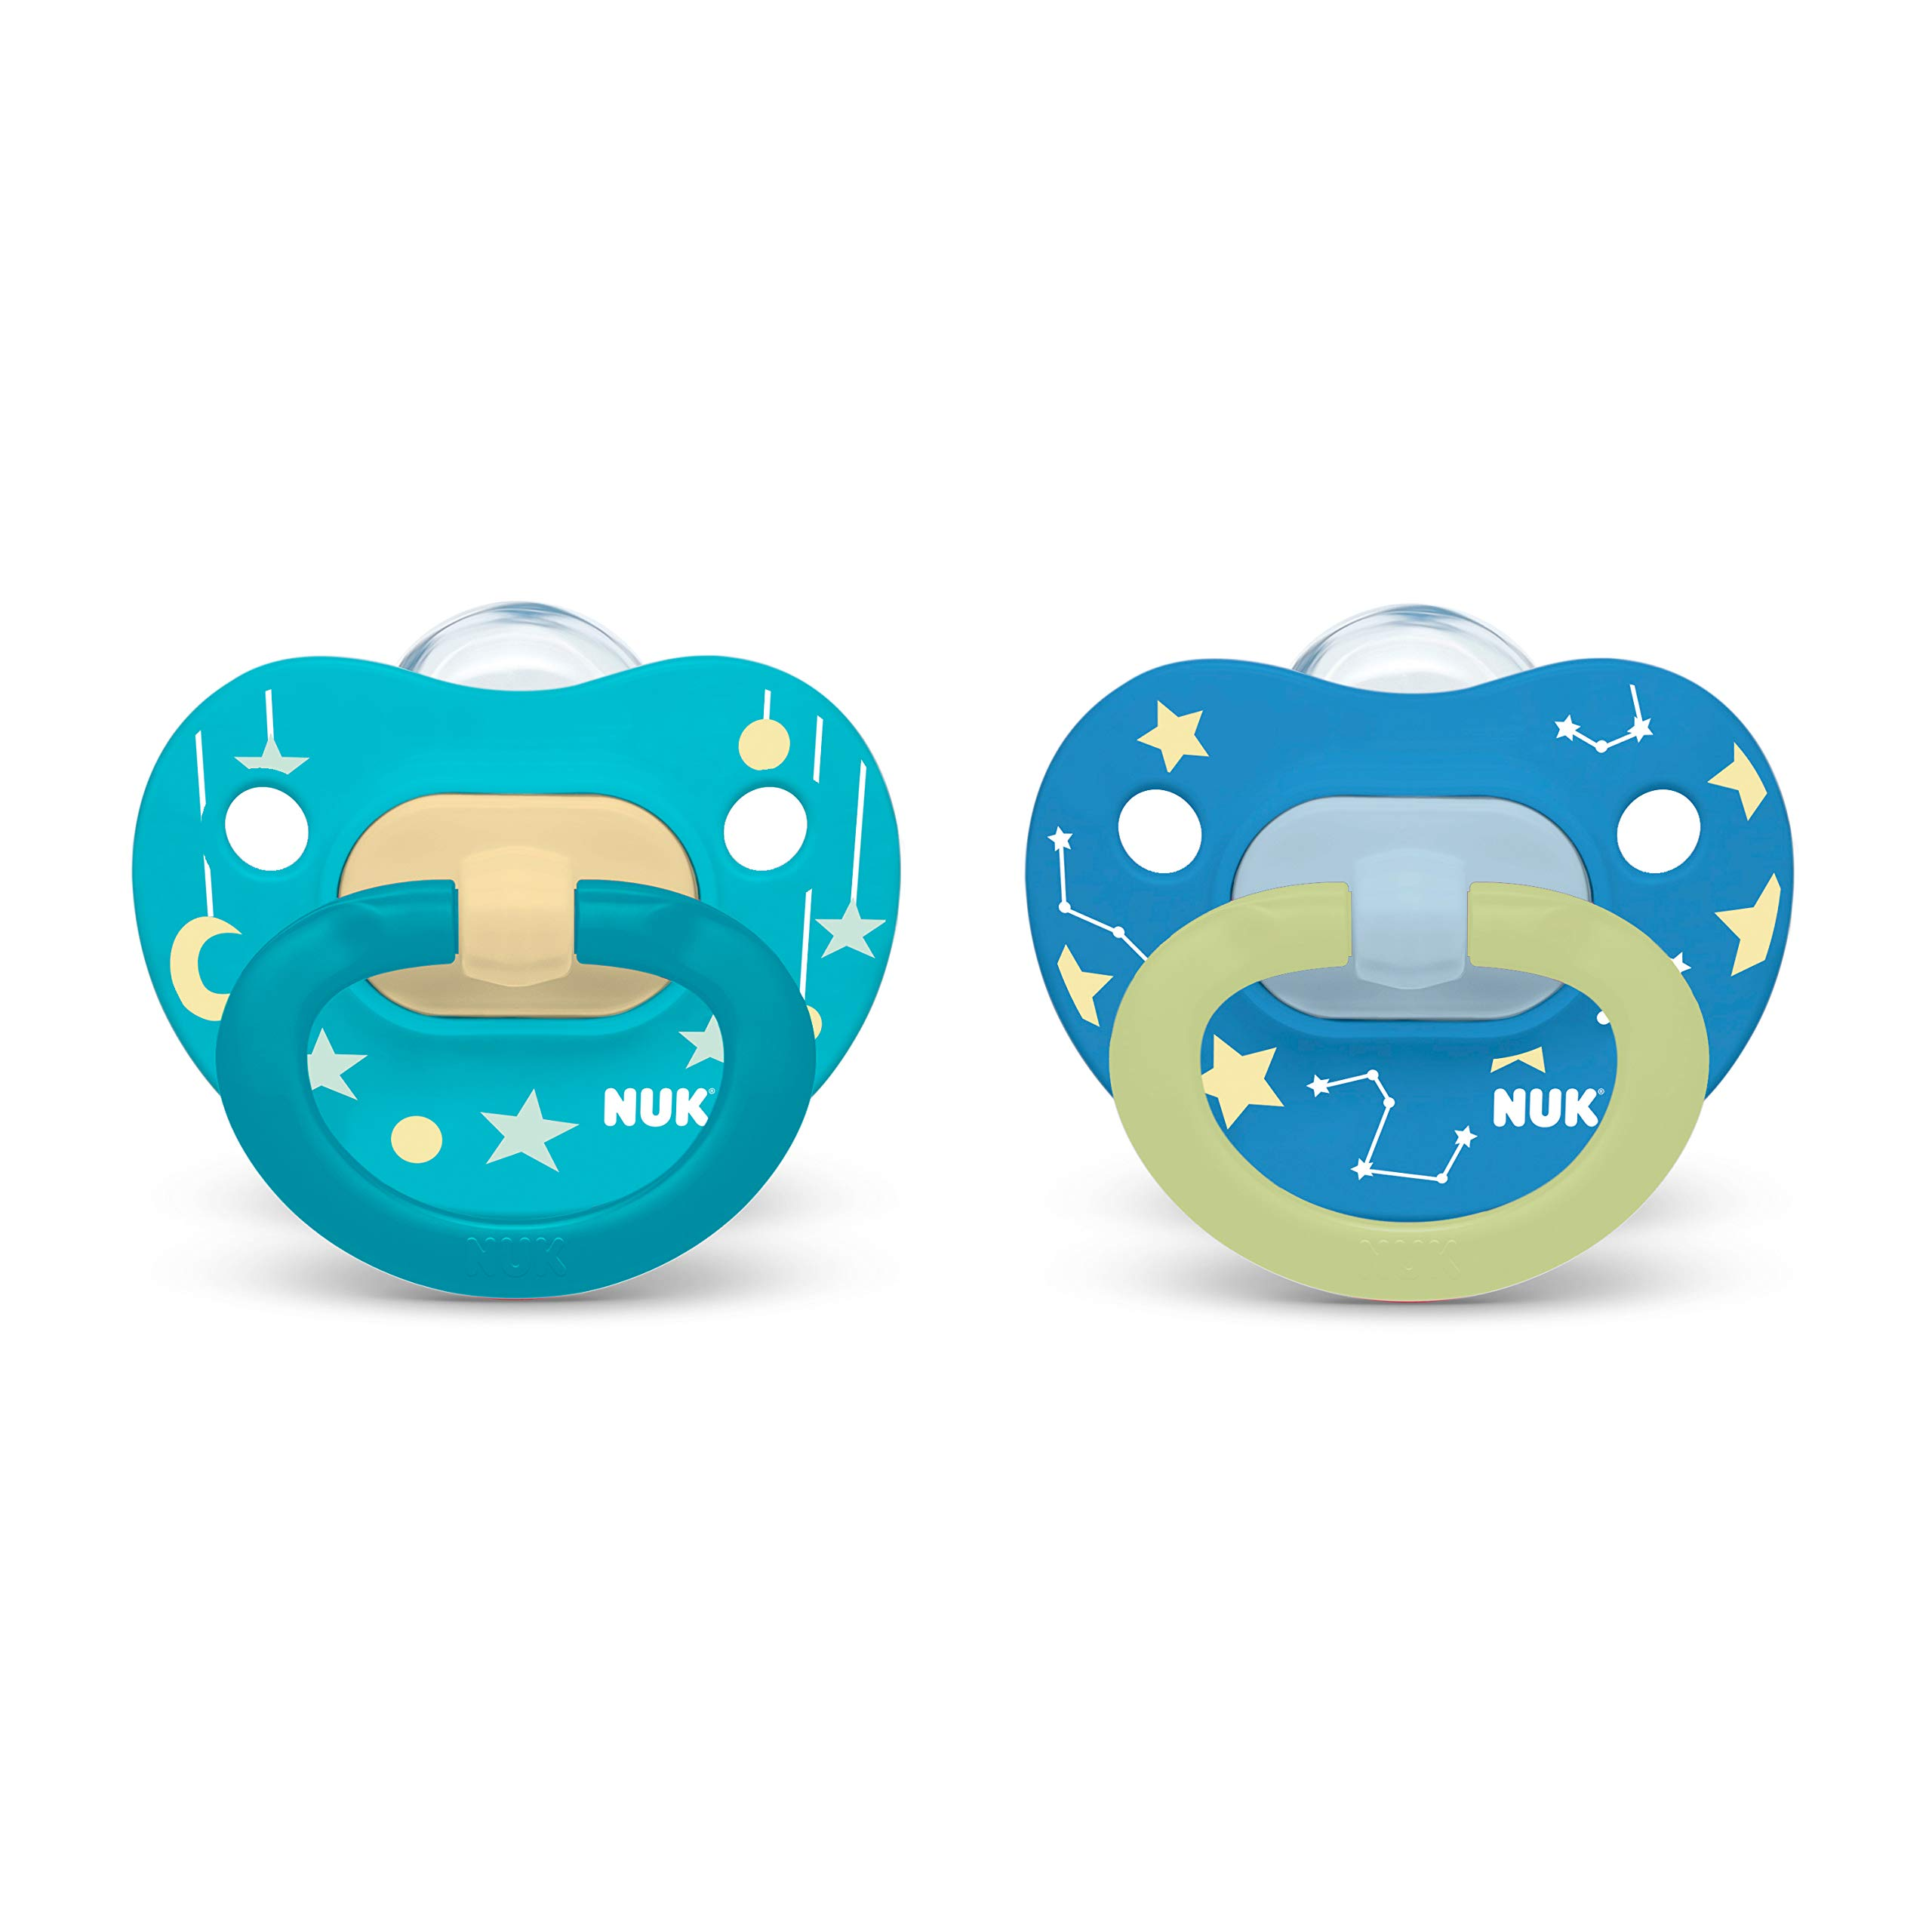 NUK Glow-in-The-Dark Orthodontic Pacifiers